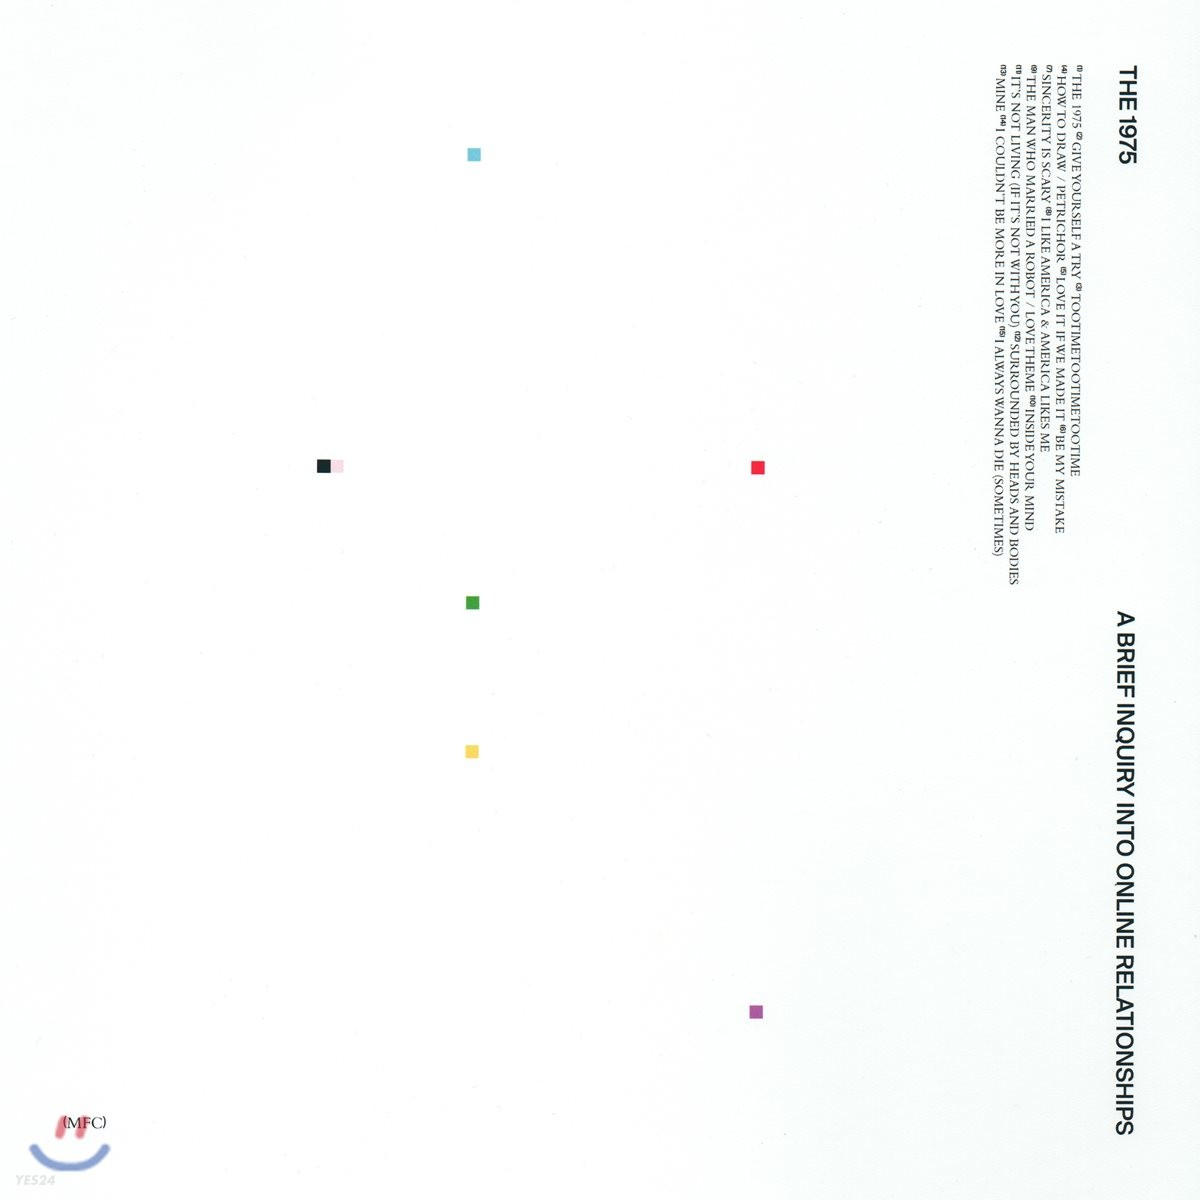 The 1975 - A Brief Inquiry Into Online Relationships 정규 3집